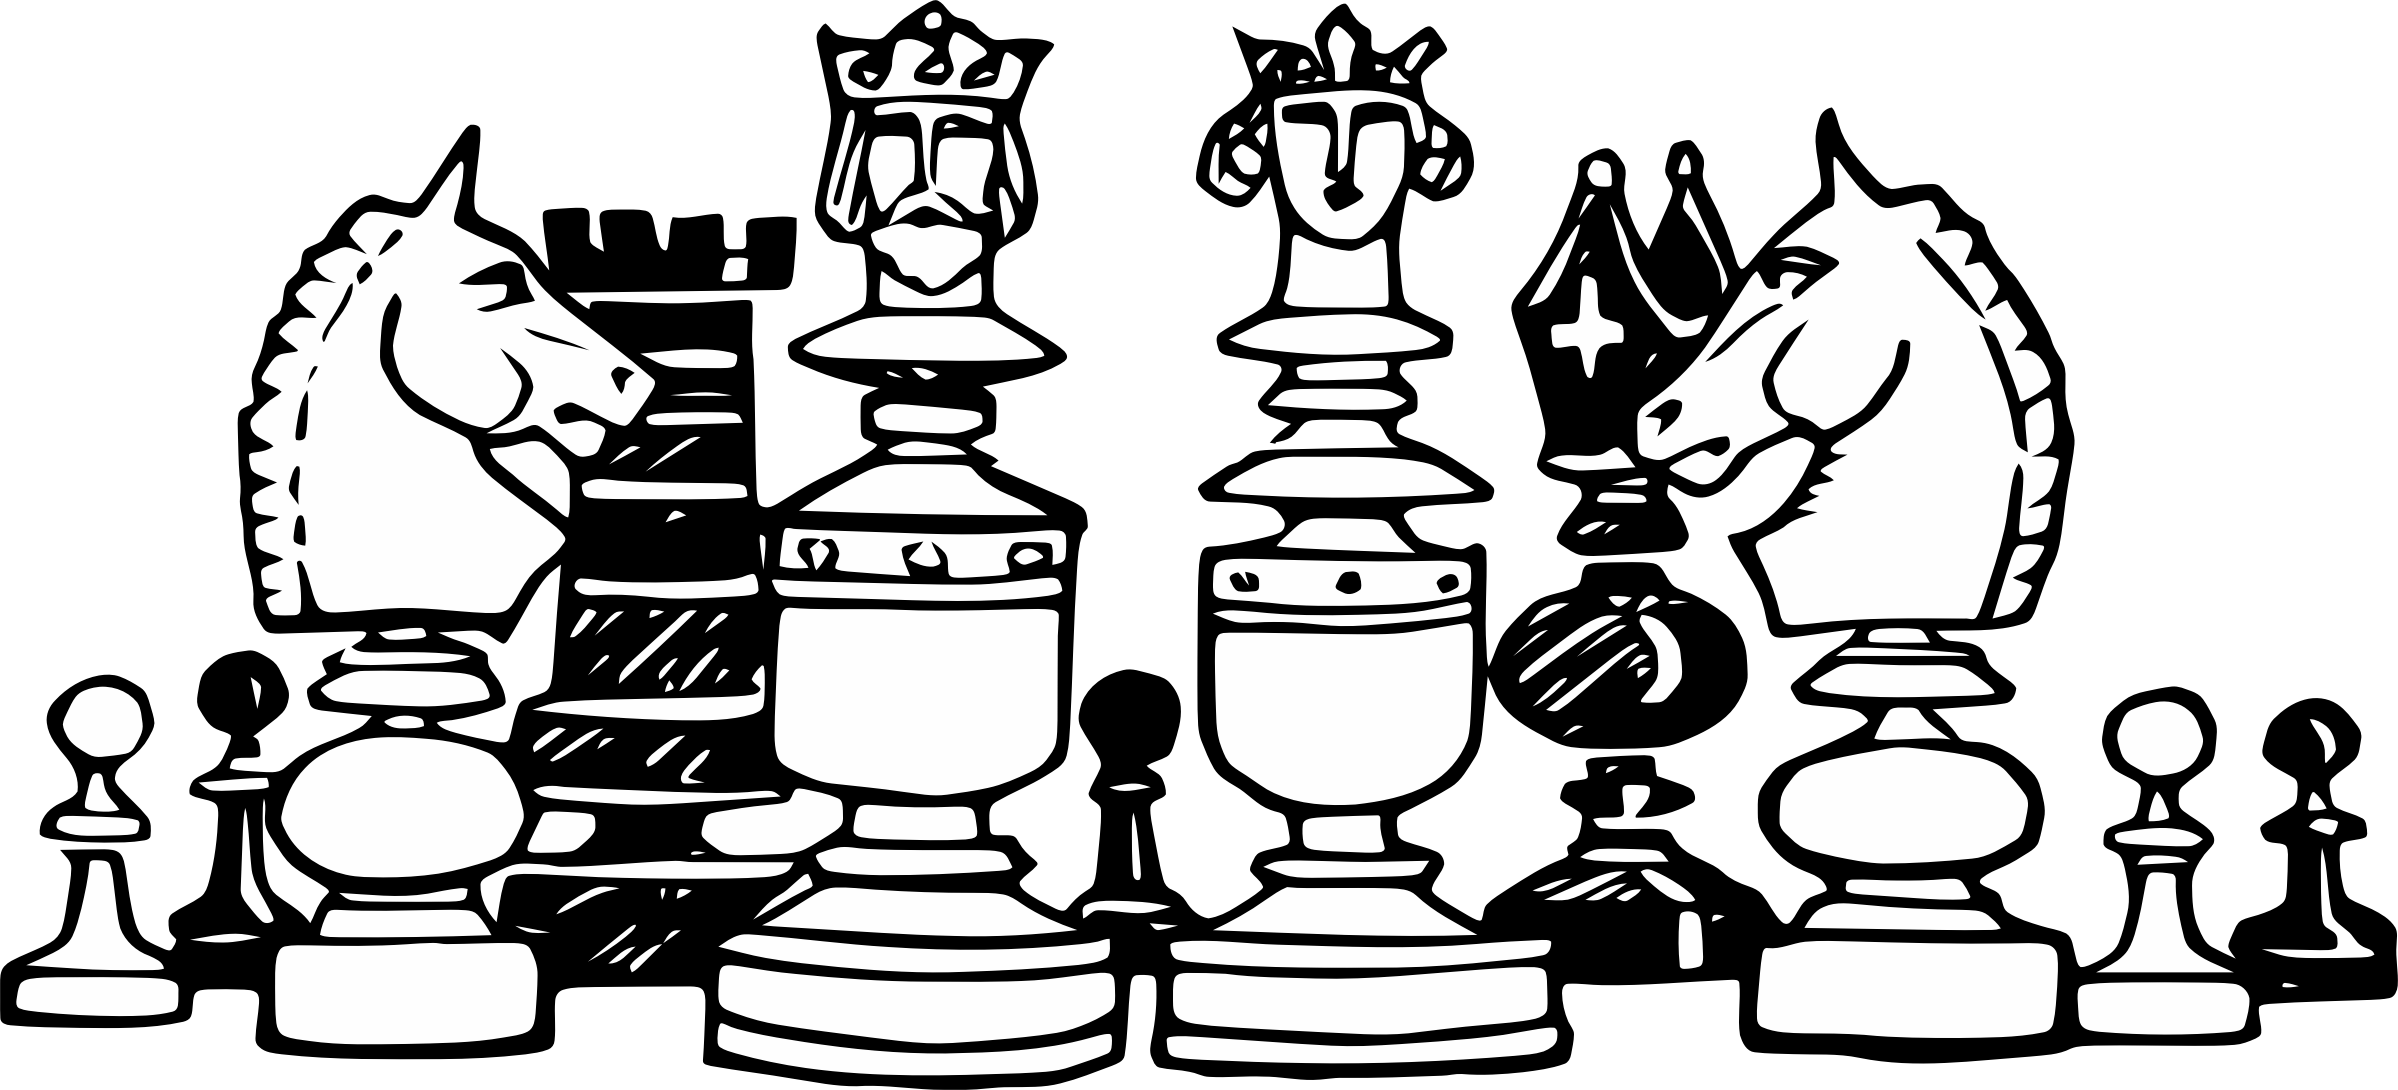 Checkers crown clipart clip stock 28+ Collection of Playing Chess Clipart Black And White | High ... clip stock